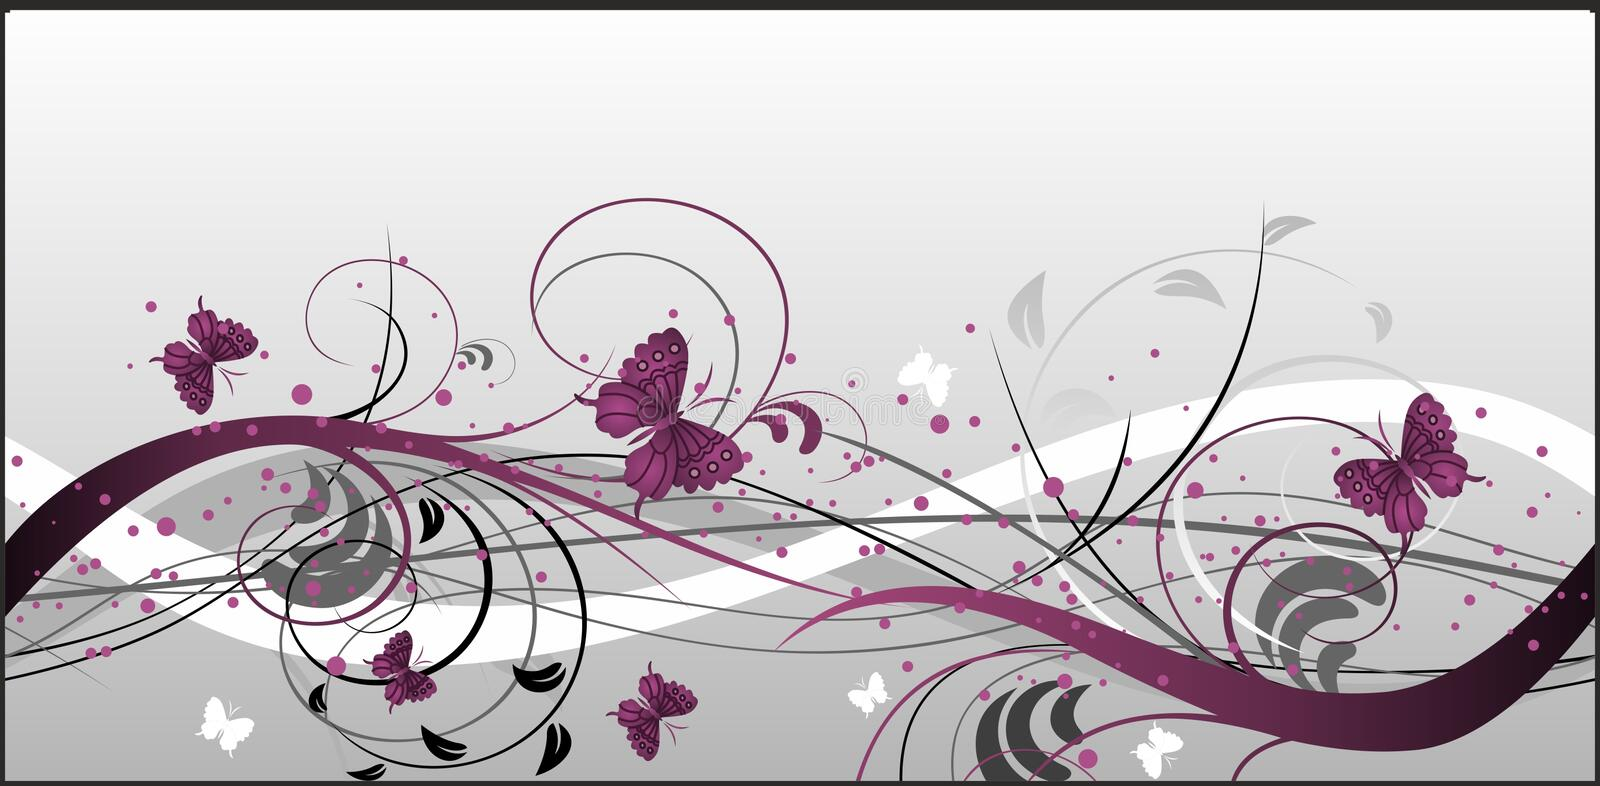 papillons images stock